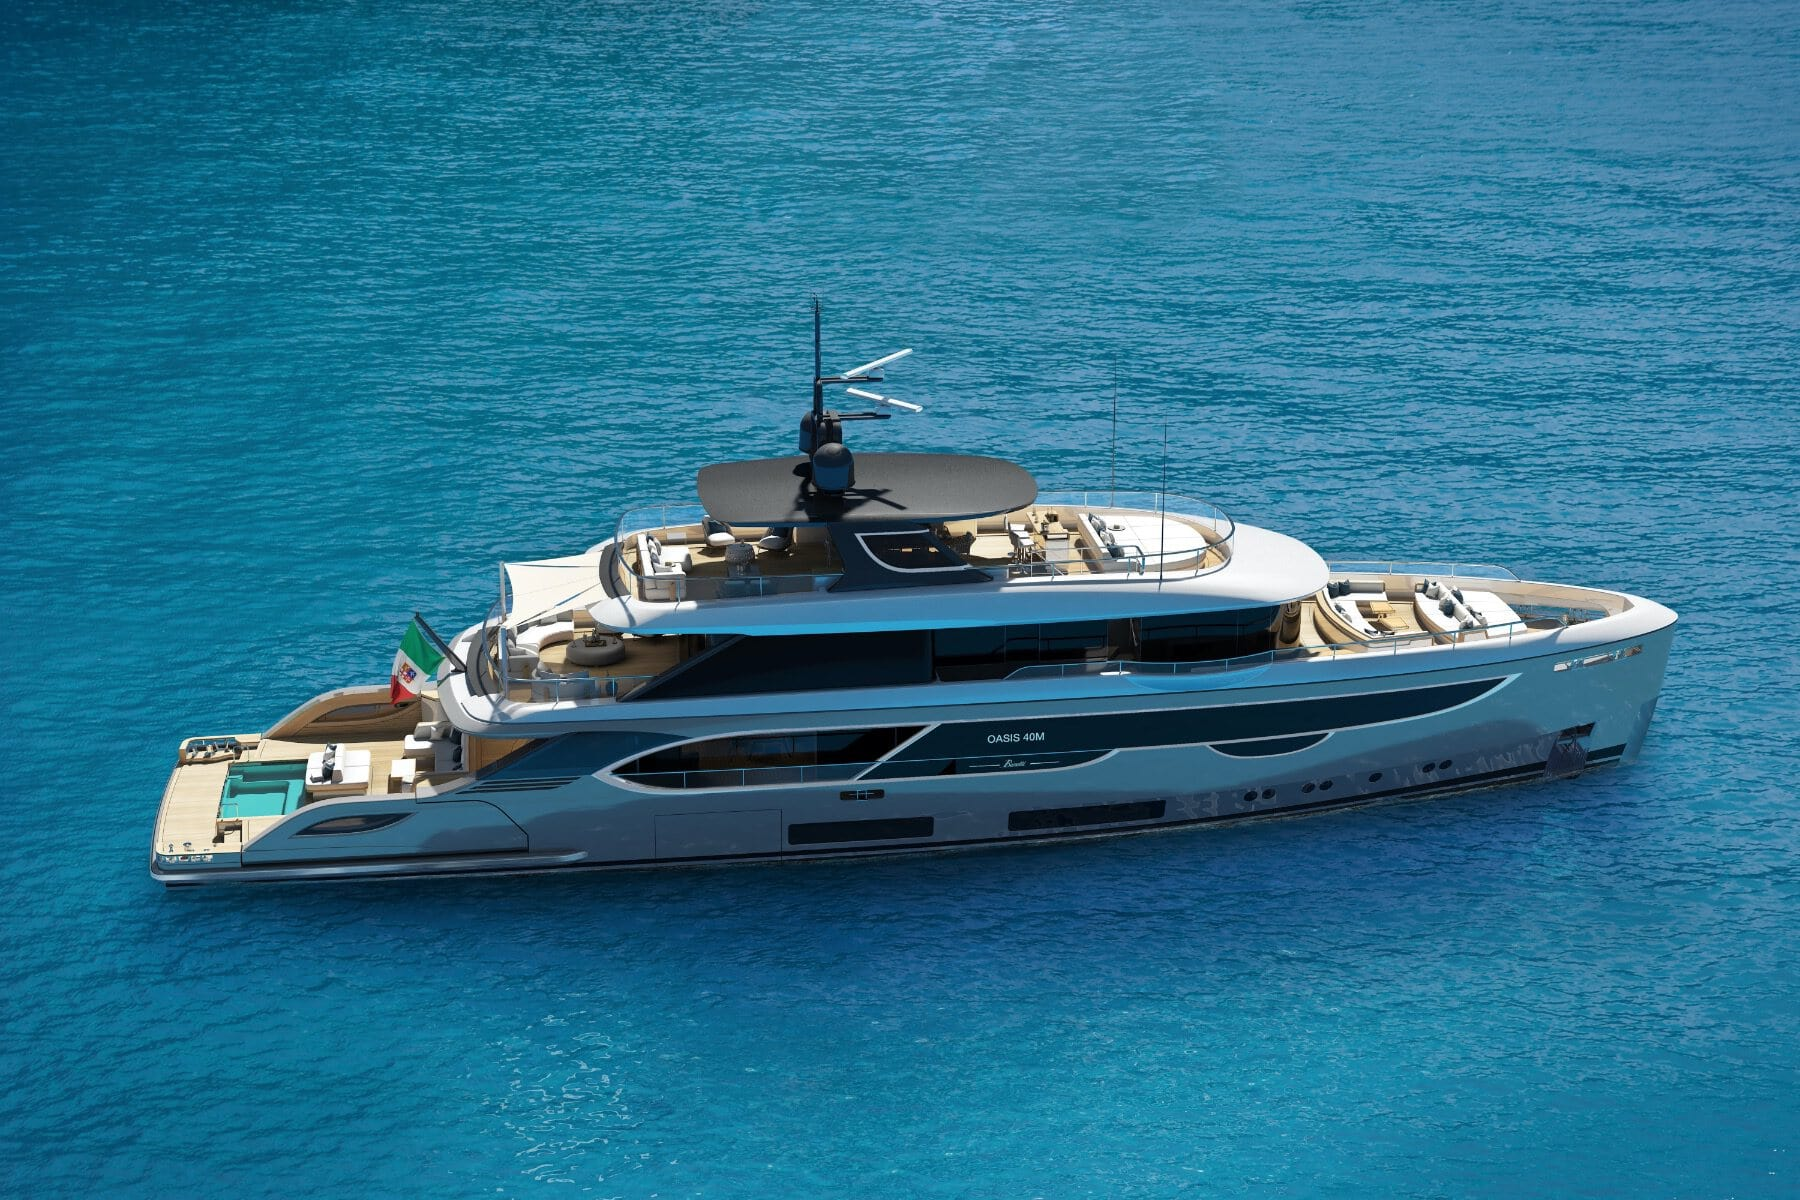 Benetti Oasis 40M View flaps up